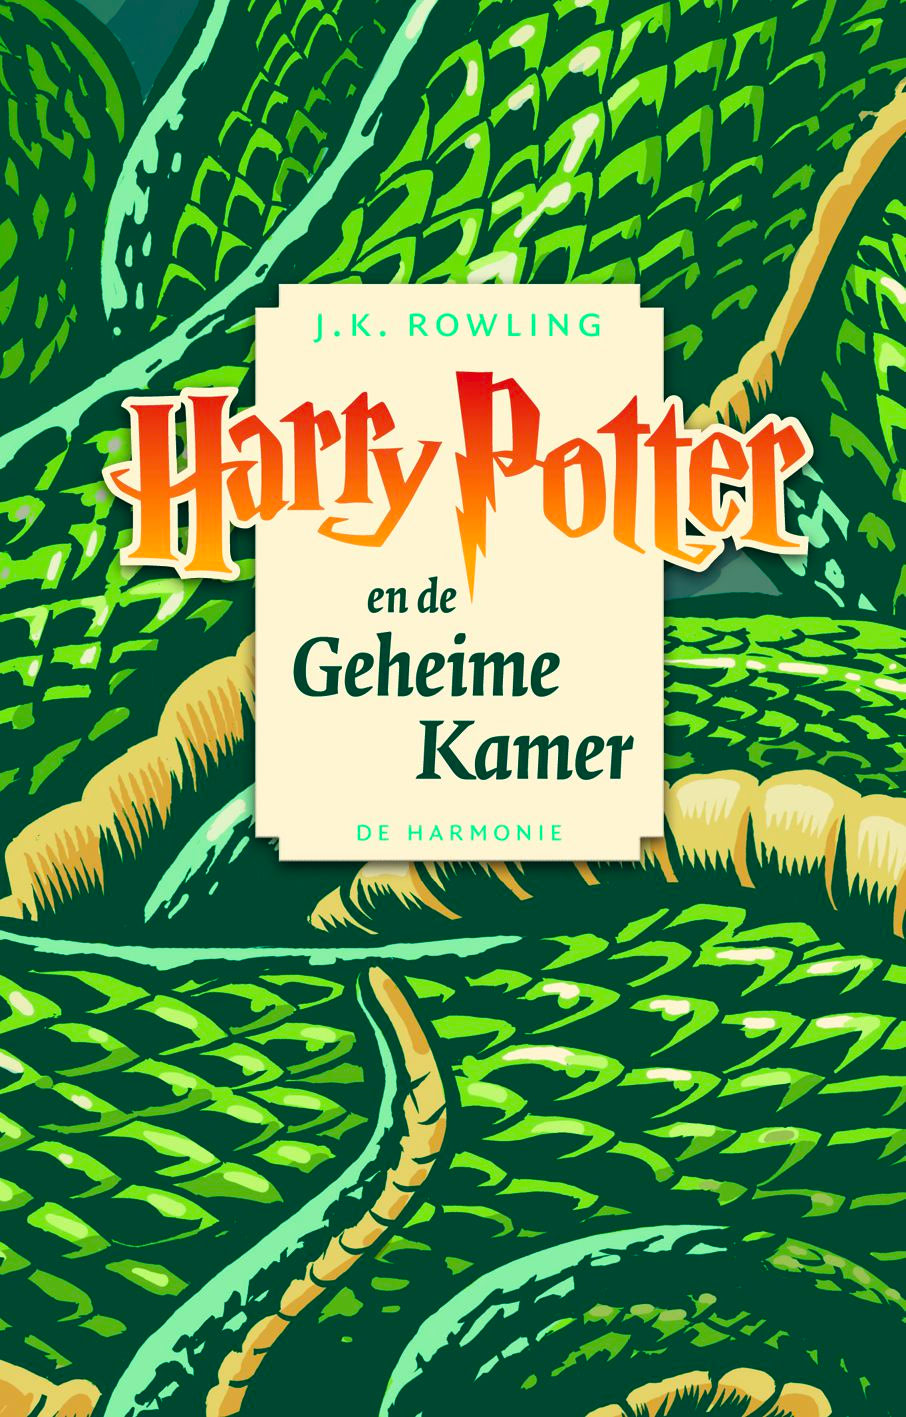 'Chamber of Secrets' Dutch pocket edition